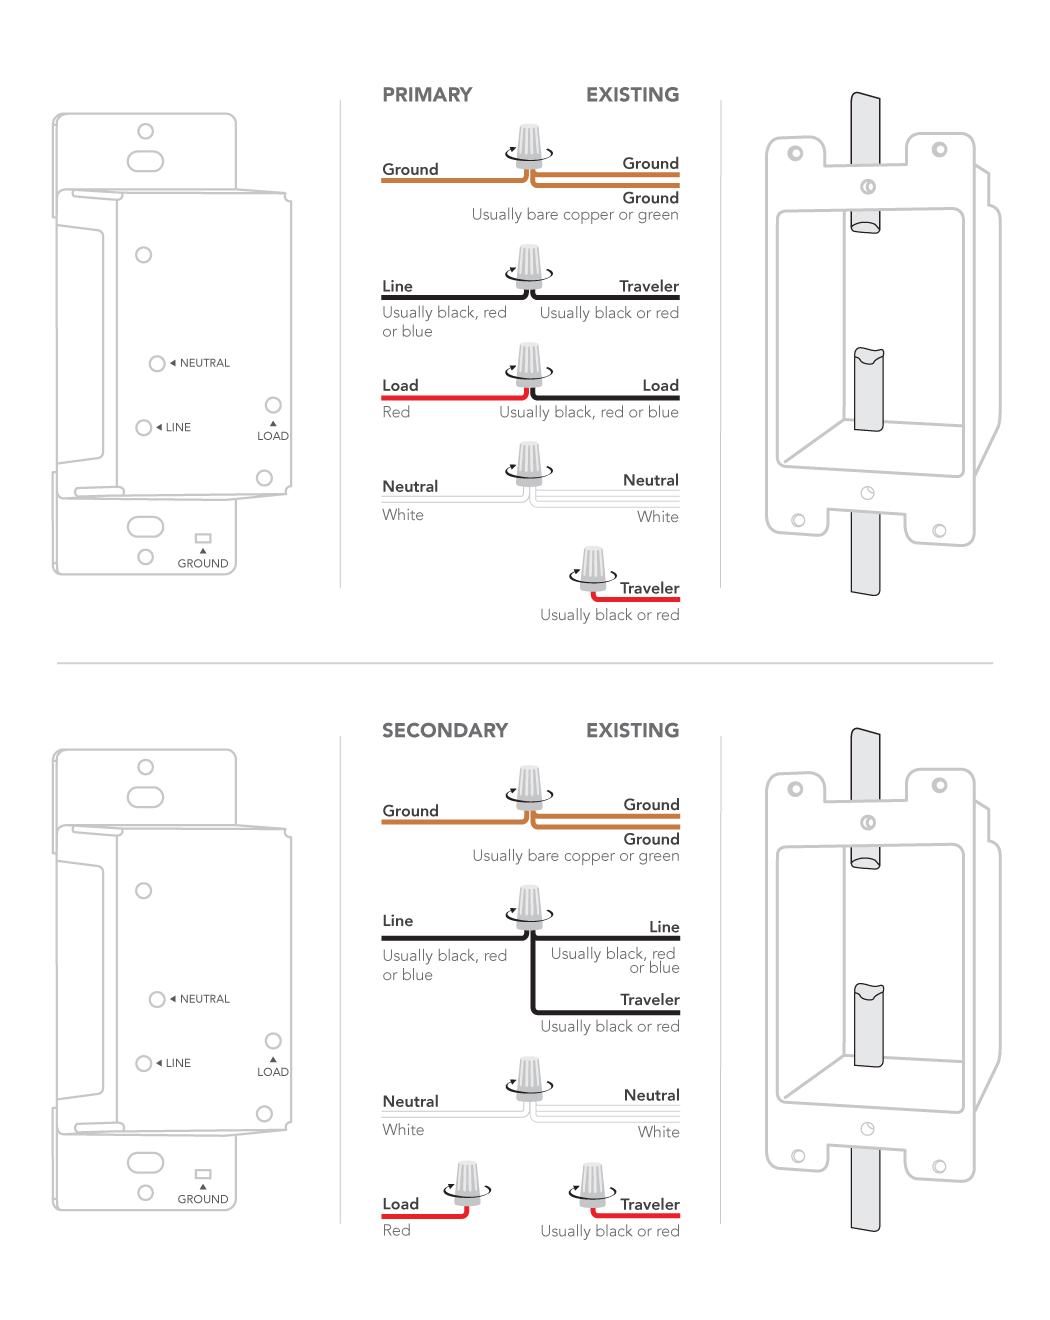 Lutron Maestro 3 Way Dimmer Wiring Diagram : lutron, maestro, dimmer, wiring, diagram, Installing, Dimmer, Switch:, 4-way, Customer, Support